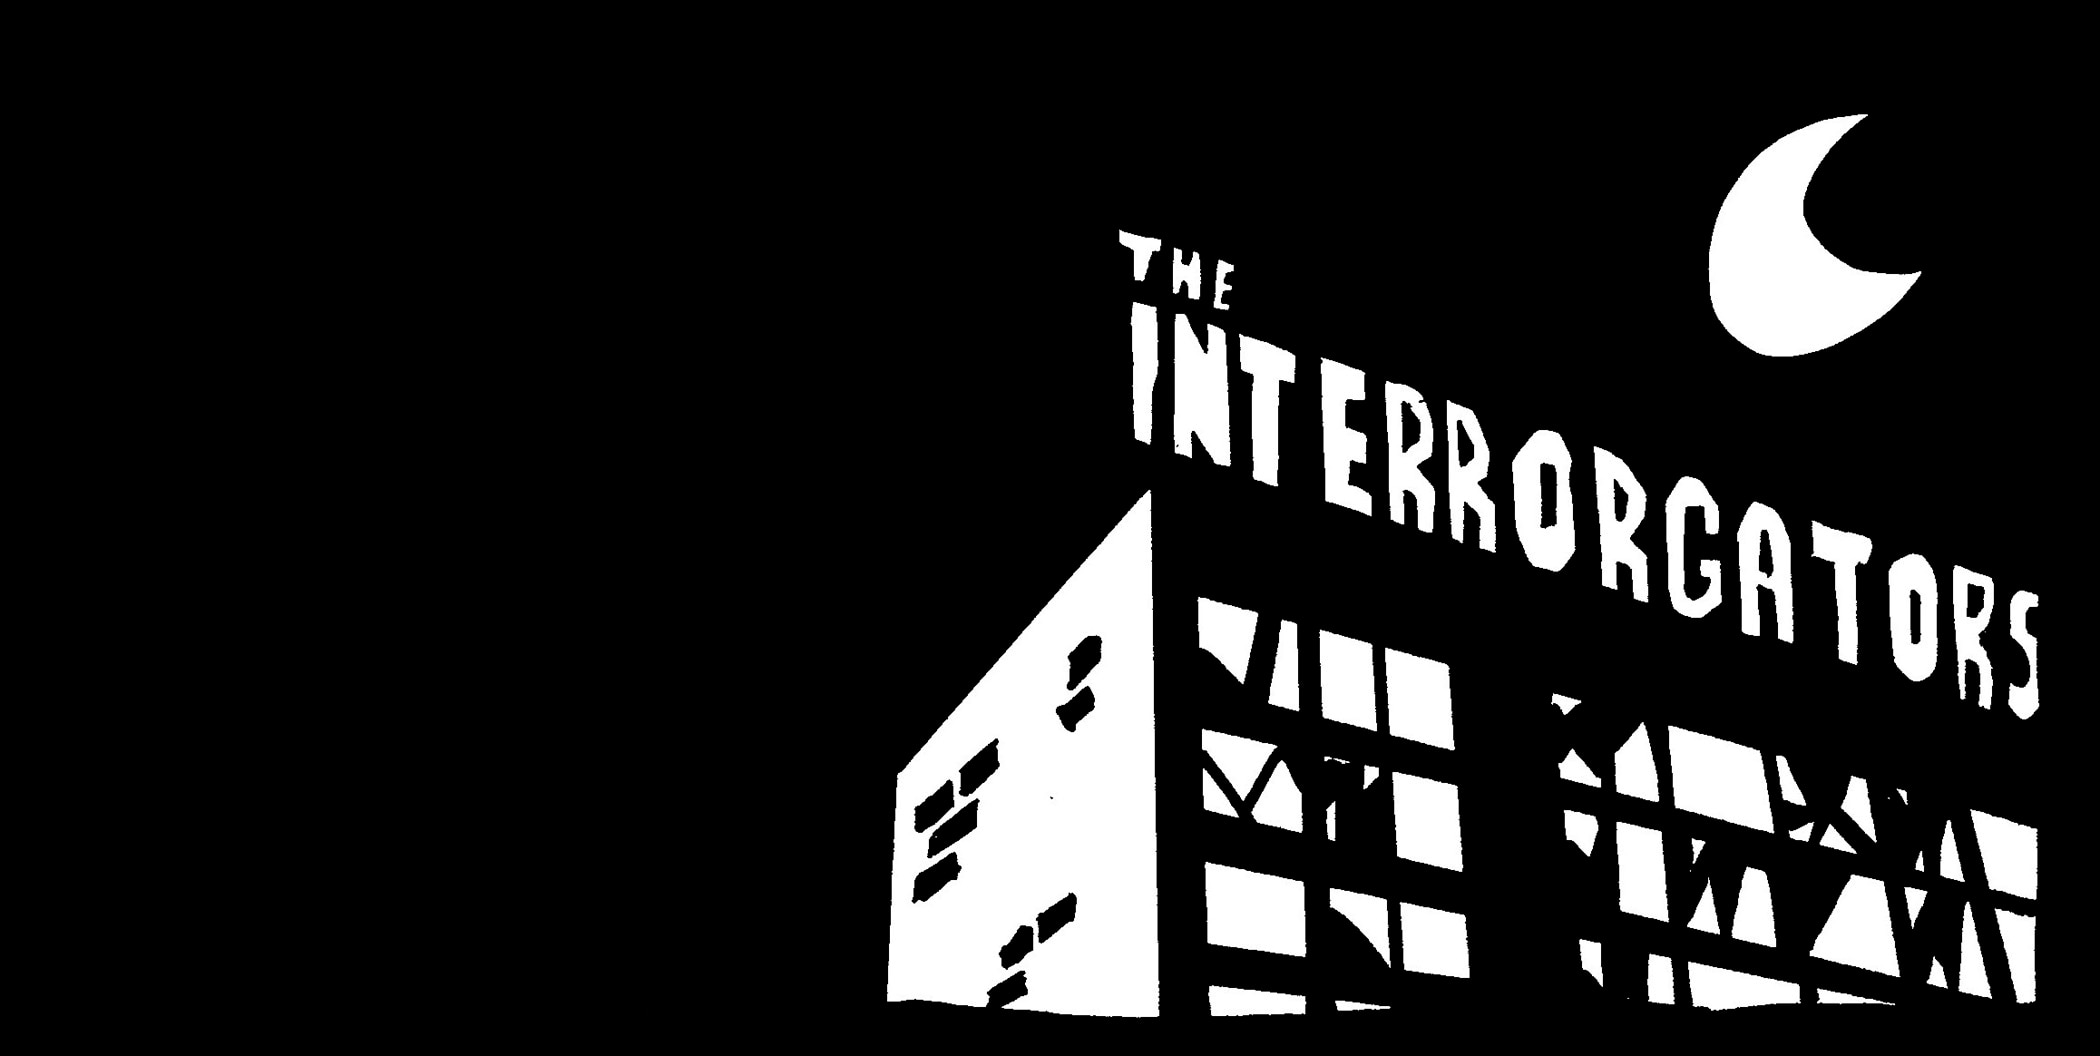 New Intruders Imagery Invades the Interwebs